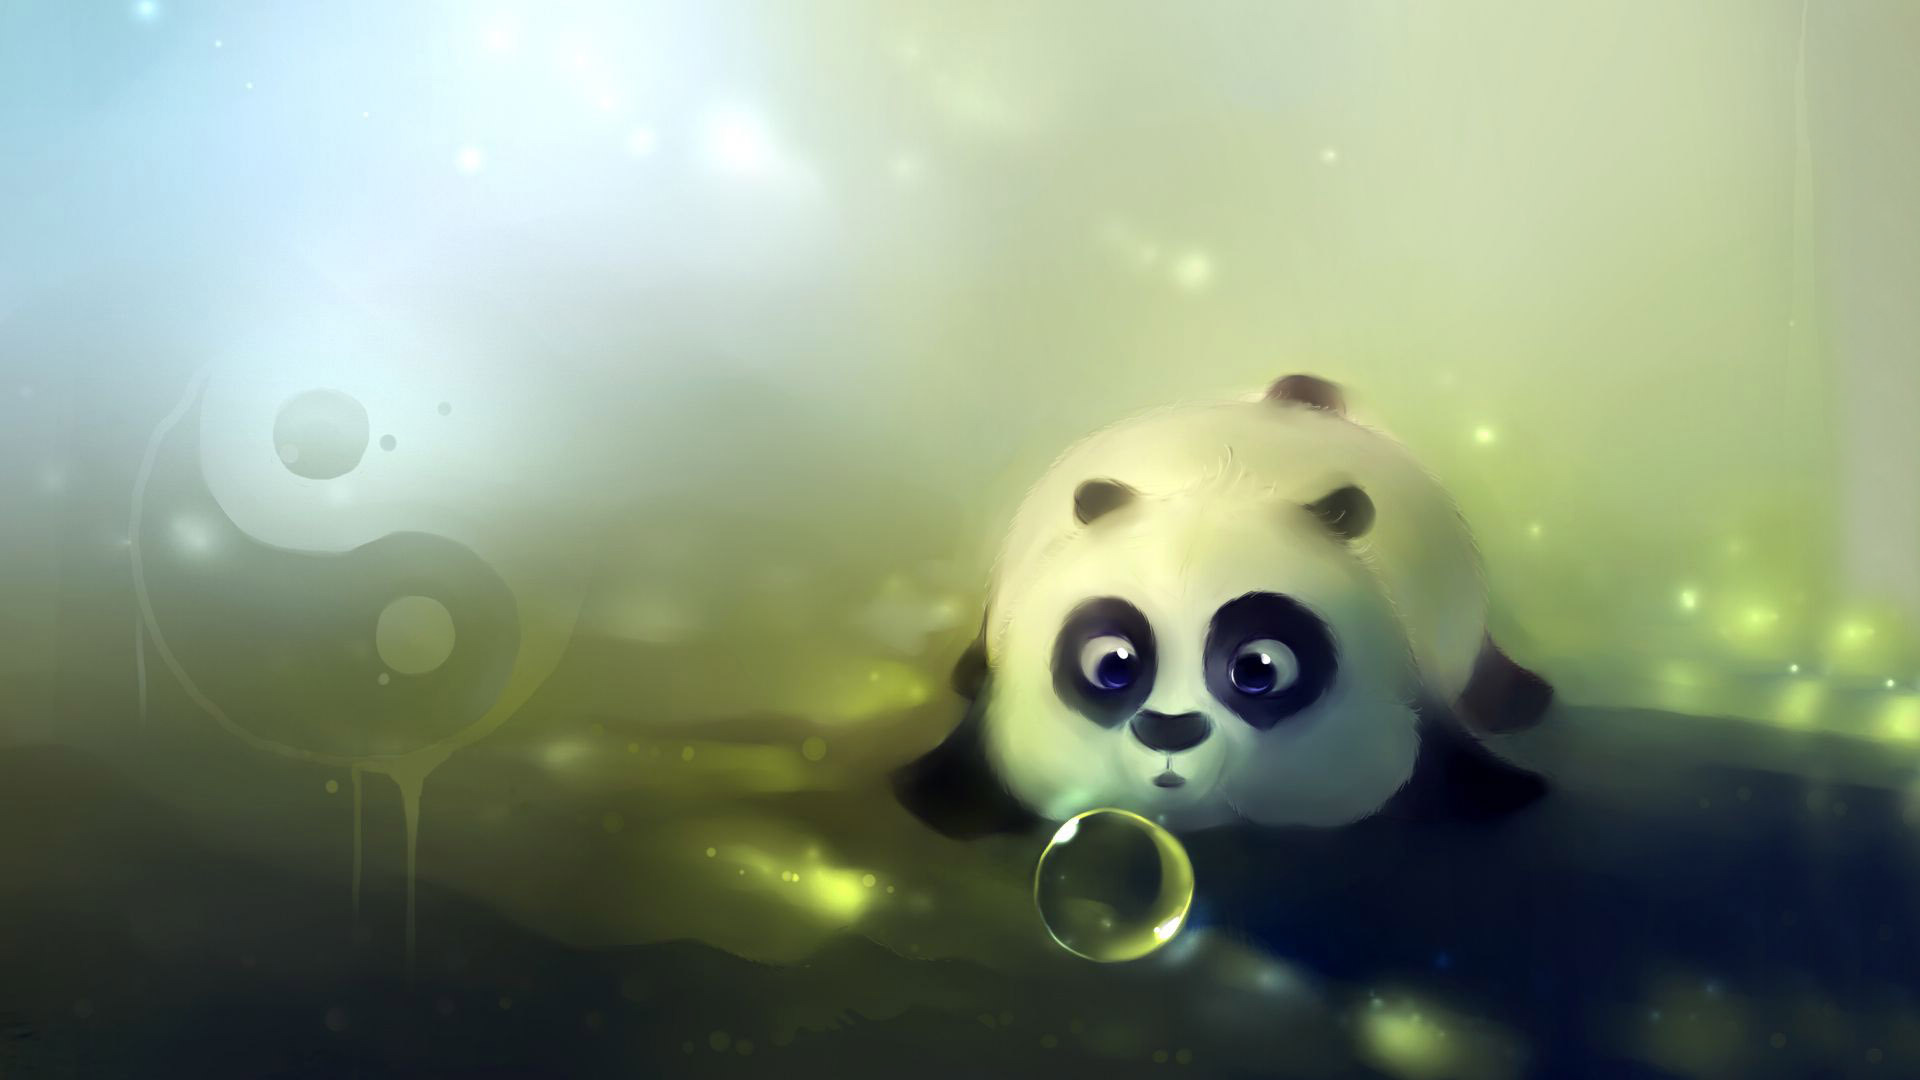 Cute panda playing with bubbles wallpaper   1023833 1920x1080